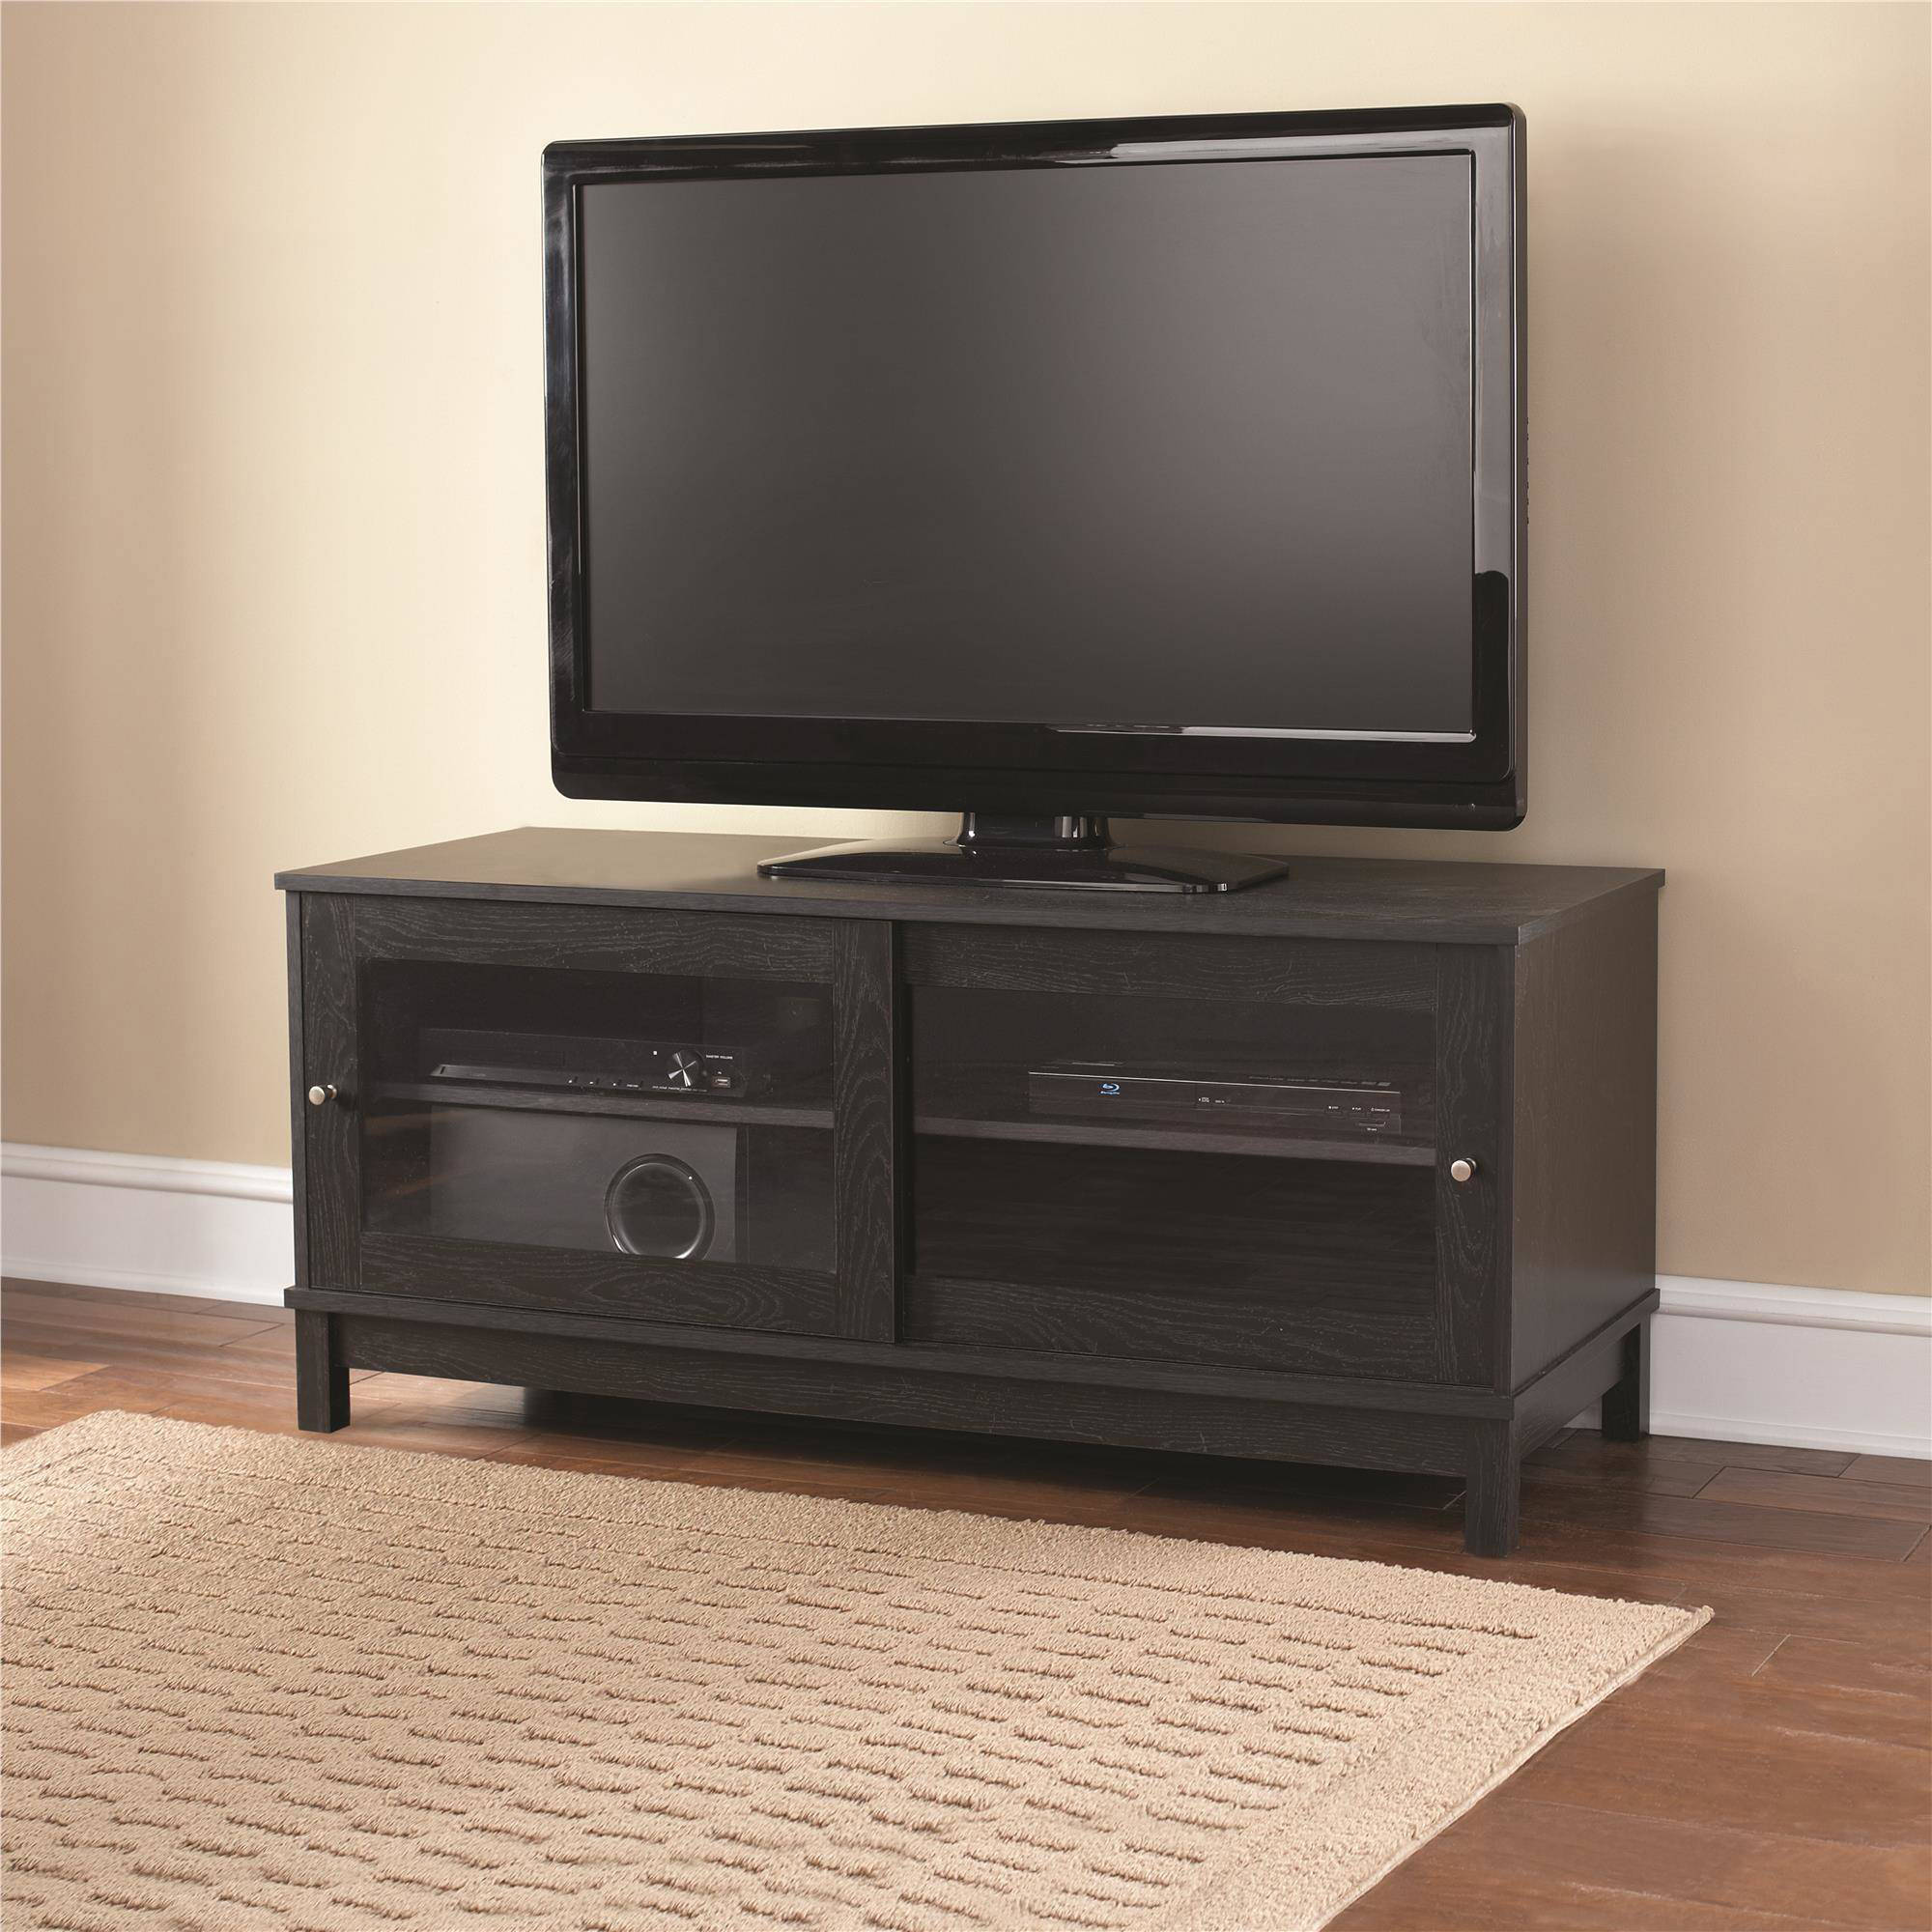 Mainstays 55 034 Tv Stand With Sliding Gl